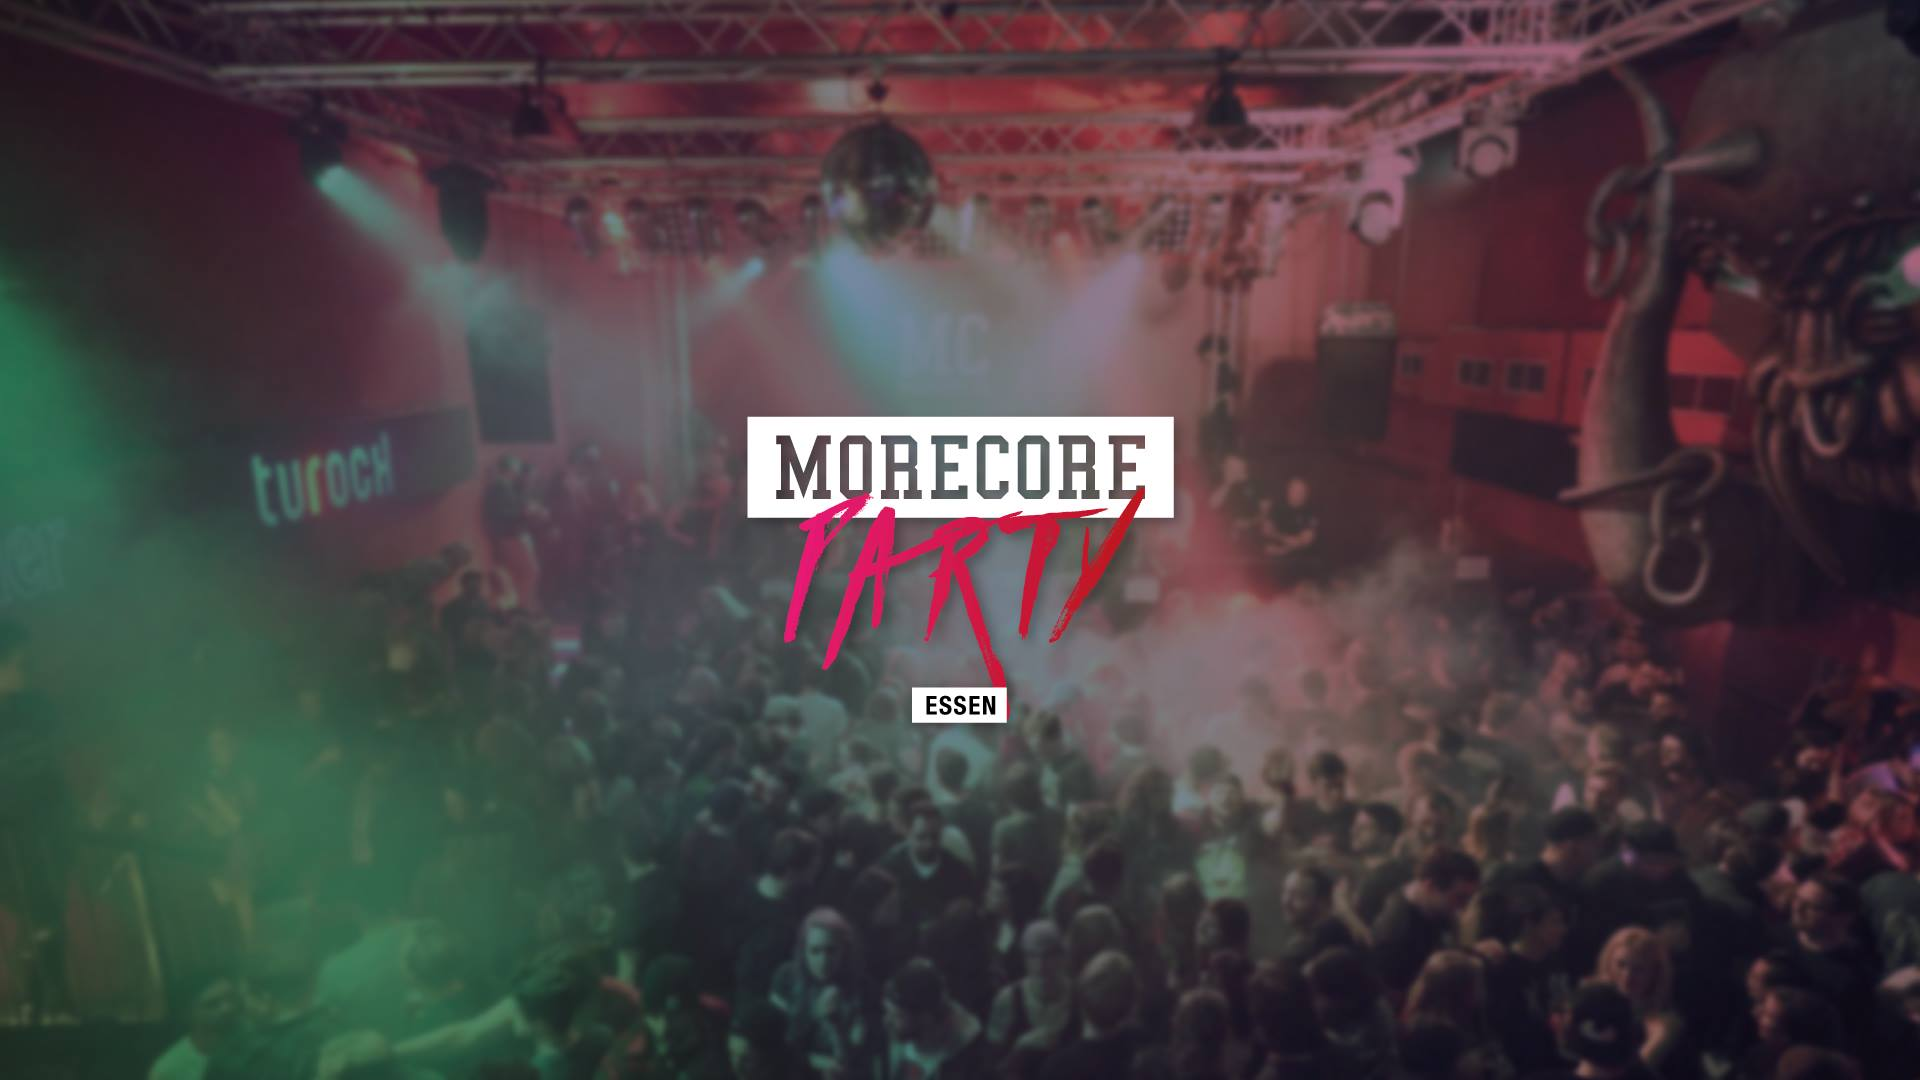 MoreCore Party Essen